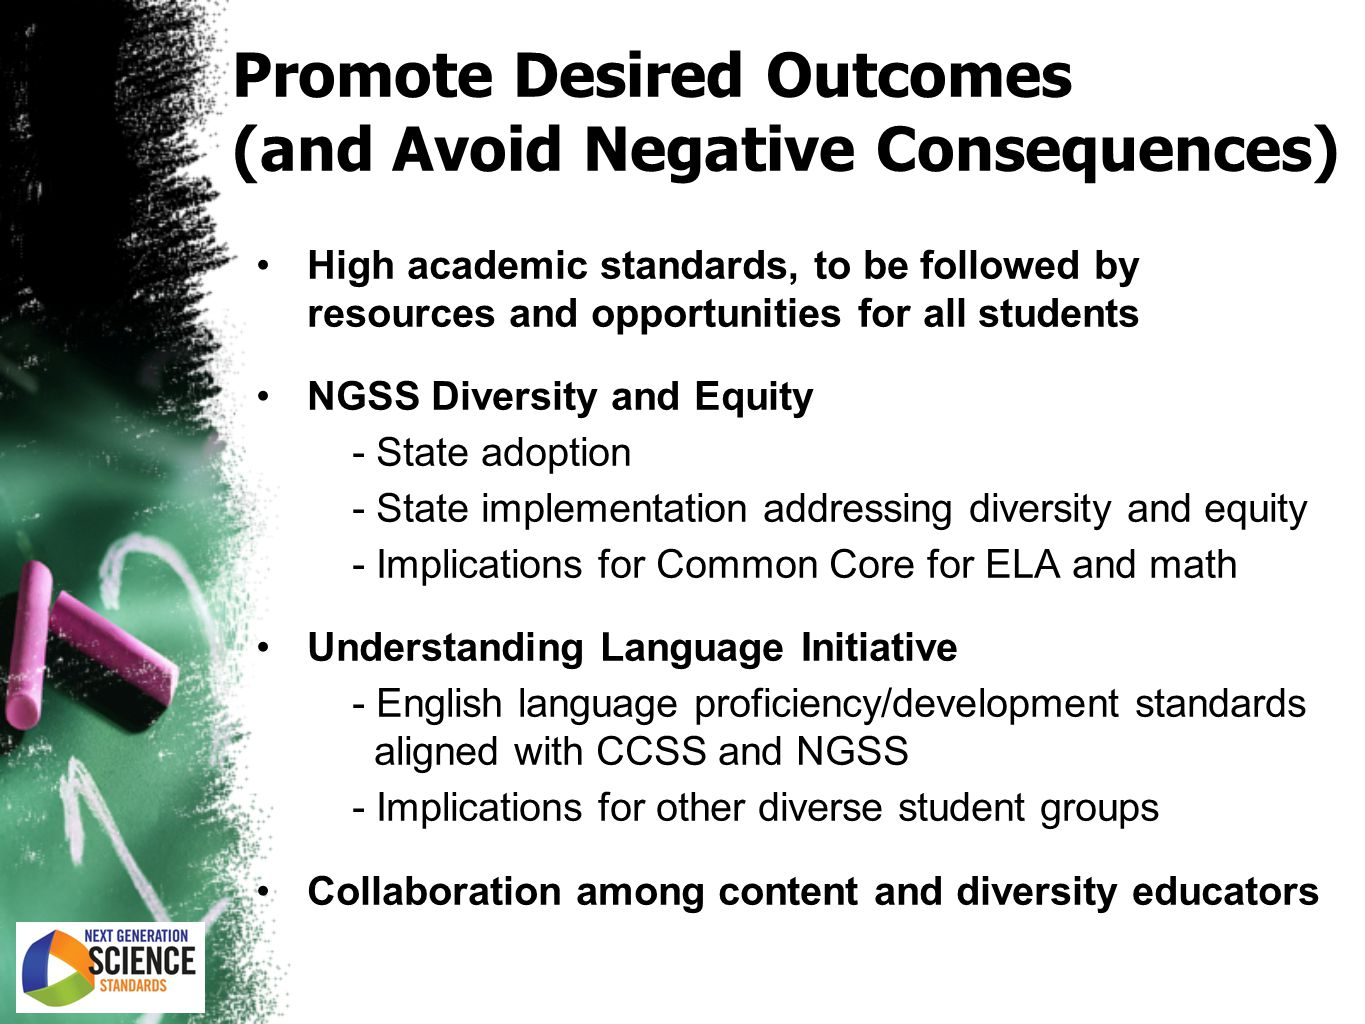 Promote Desired Outcomes (and Avoid Negative Consequences) High academic standards, to be followed by resources and opportunities for all students NGSS Diversity and Equity - State adoption - State implementation addressing diversity and equity - Implications for Common Core for ELA and math Understanding Language Initiative - English language proficiency/development standards aligned with CCSS and NGSS - Implications for other diverse student groups Collaboration among content and diversity educators